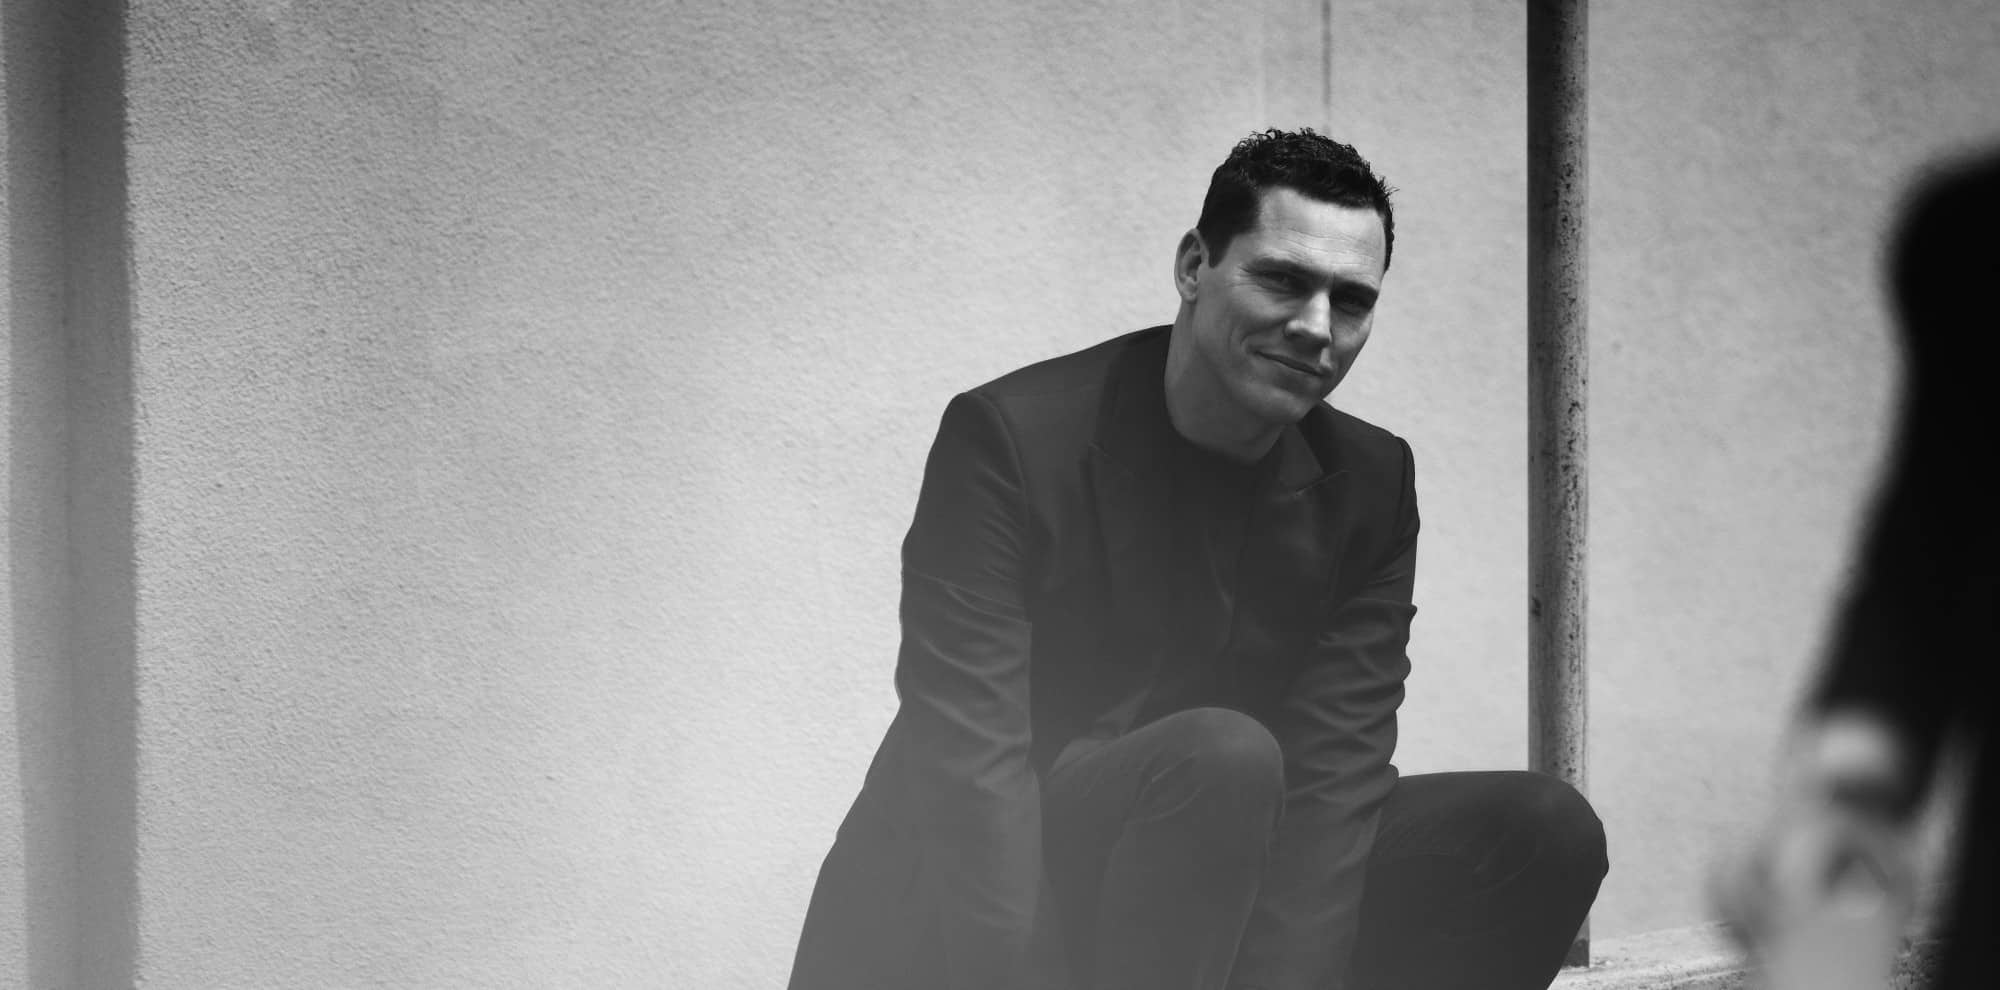 TIËSTO RE-BRANDS, LAUNCHES NEW LOGO AND MERCHANDISE